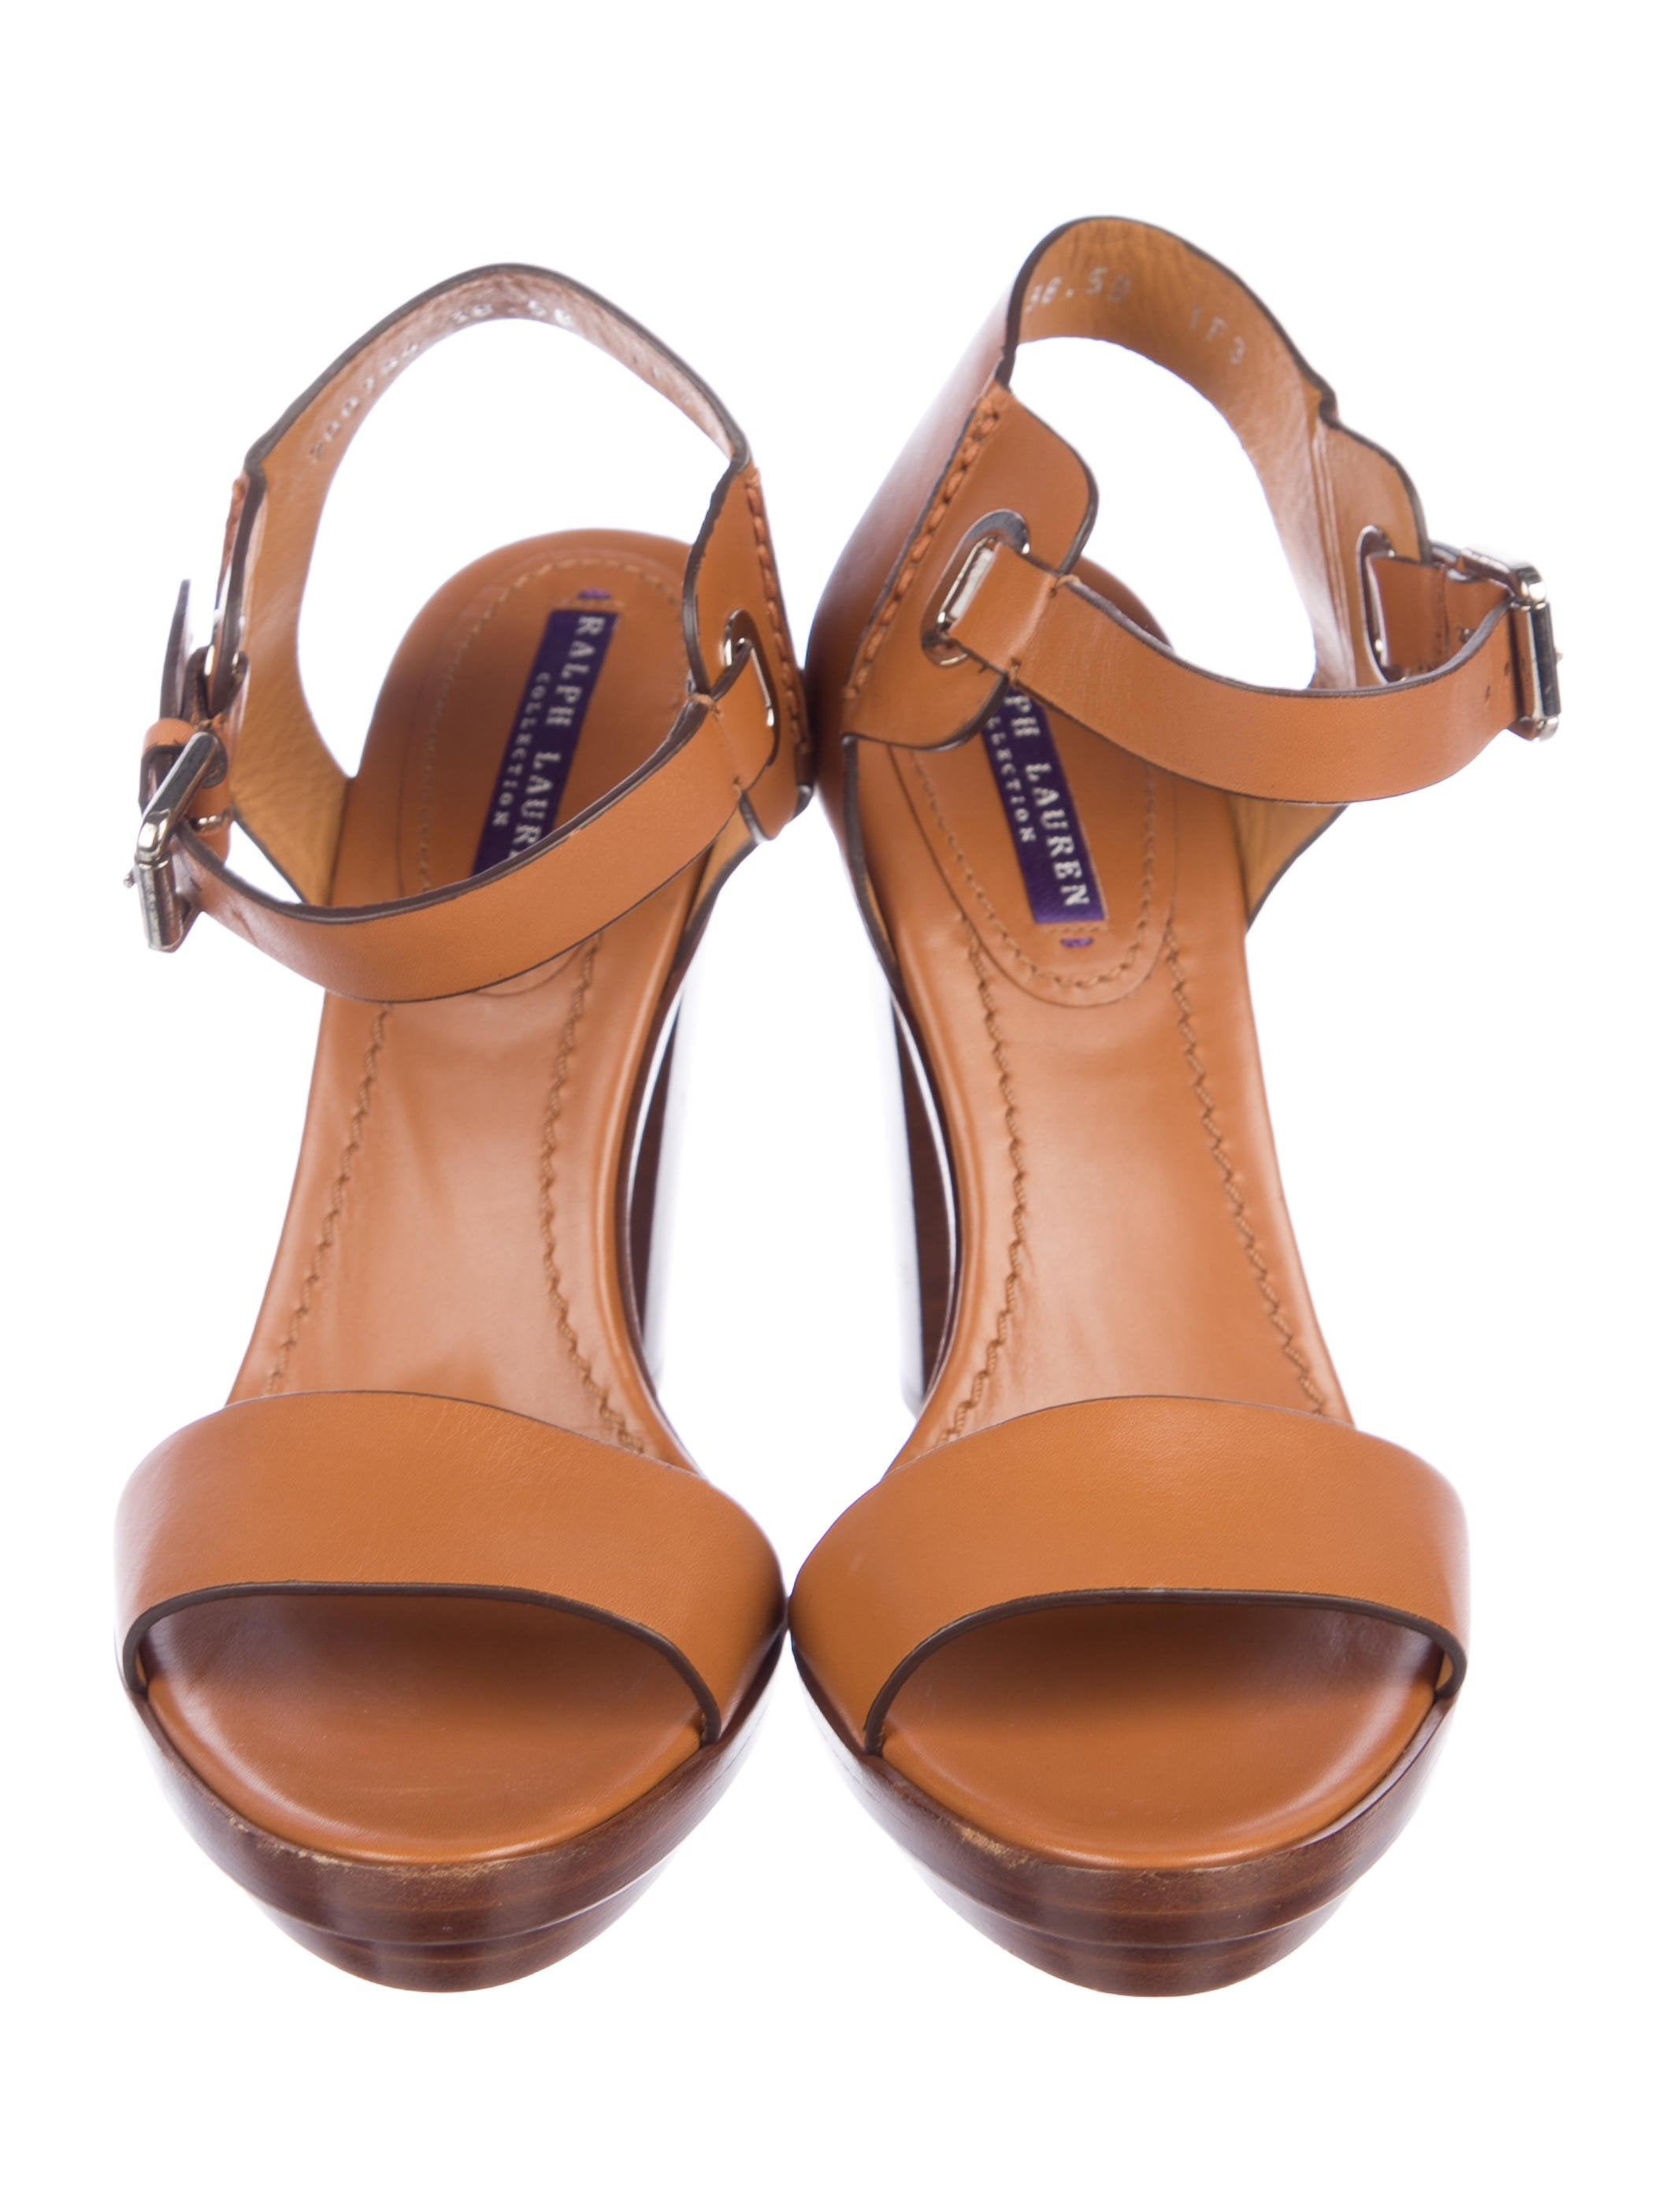 Ralph Lauren Purple Label Leather Platform Sandals new sale online j8F9anF